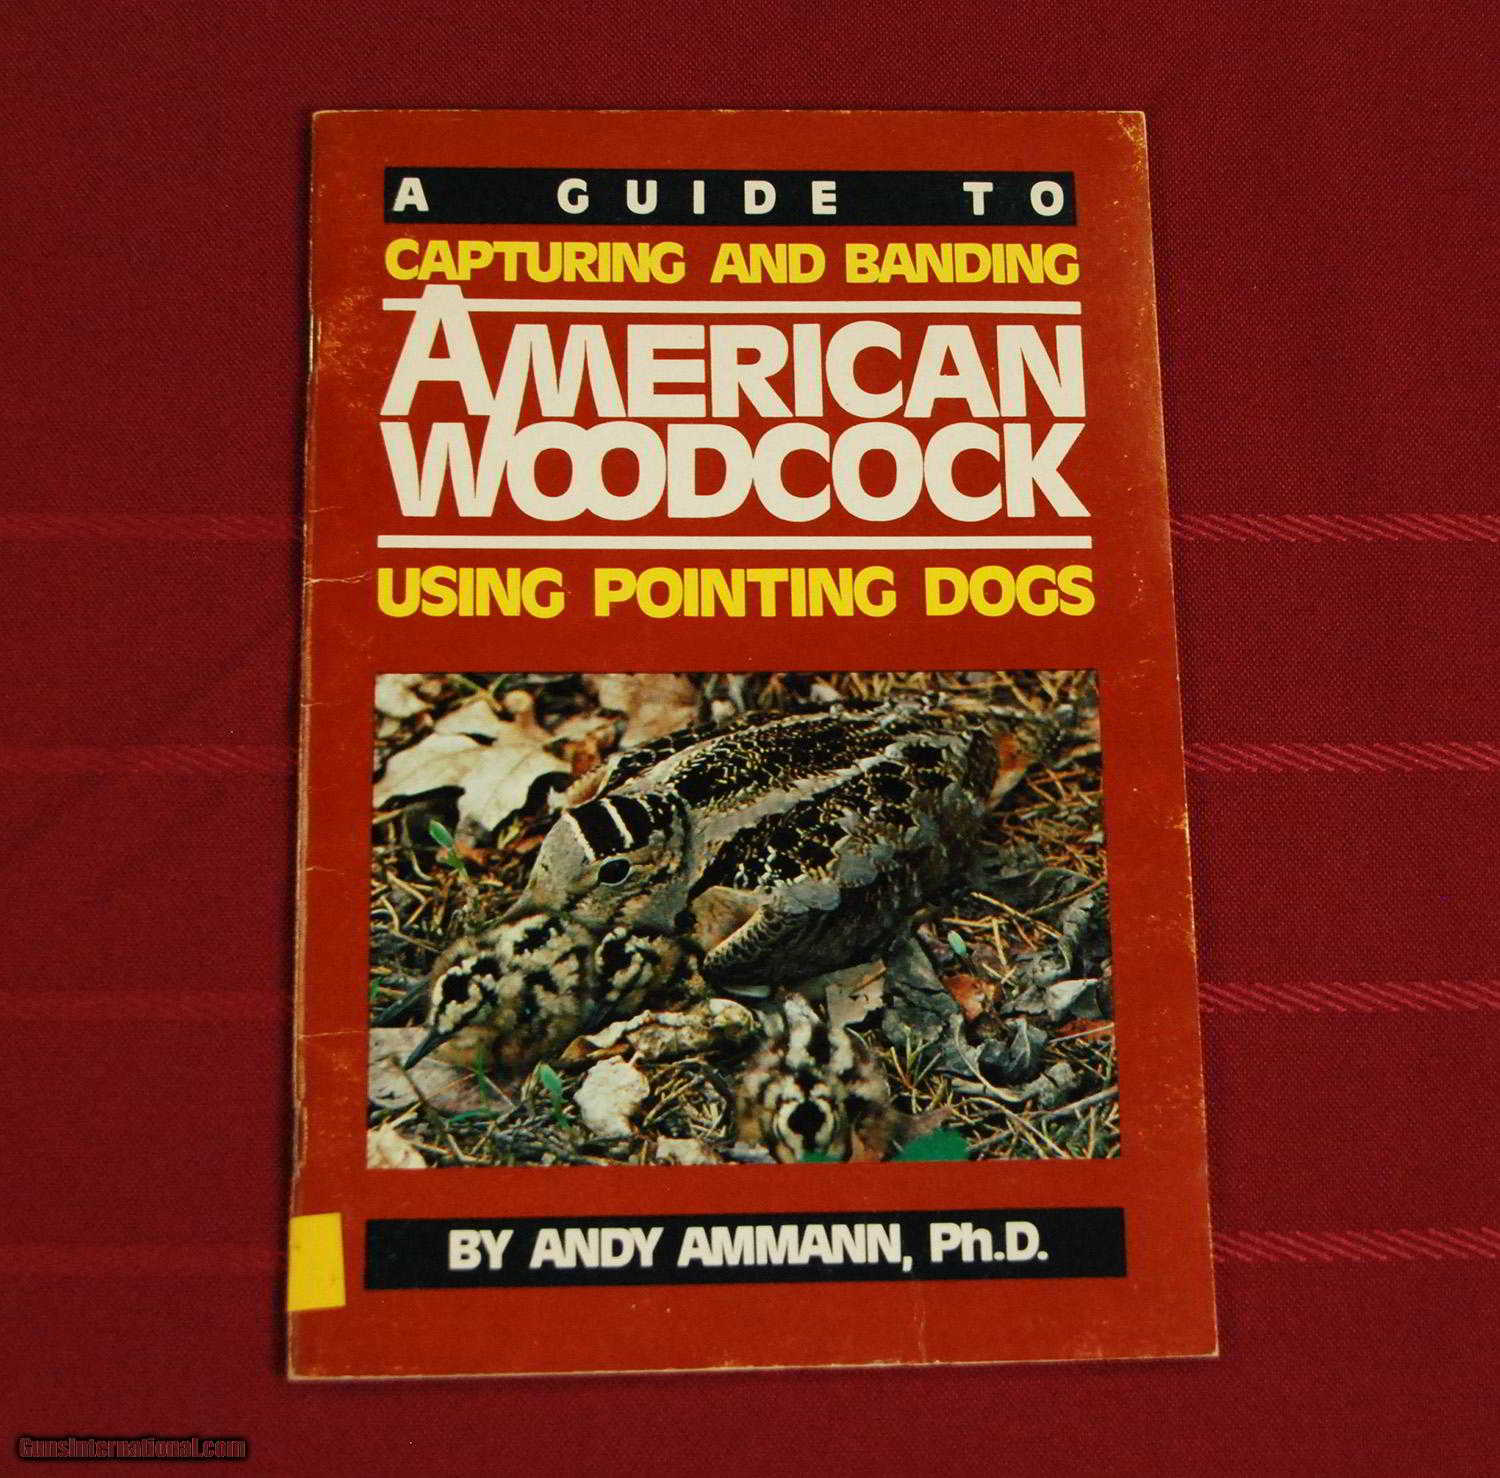 Banding guide array a guide to capturing and banding american woodcock using pointing dogs rh gunsinternational com fandeluxe Choice Image